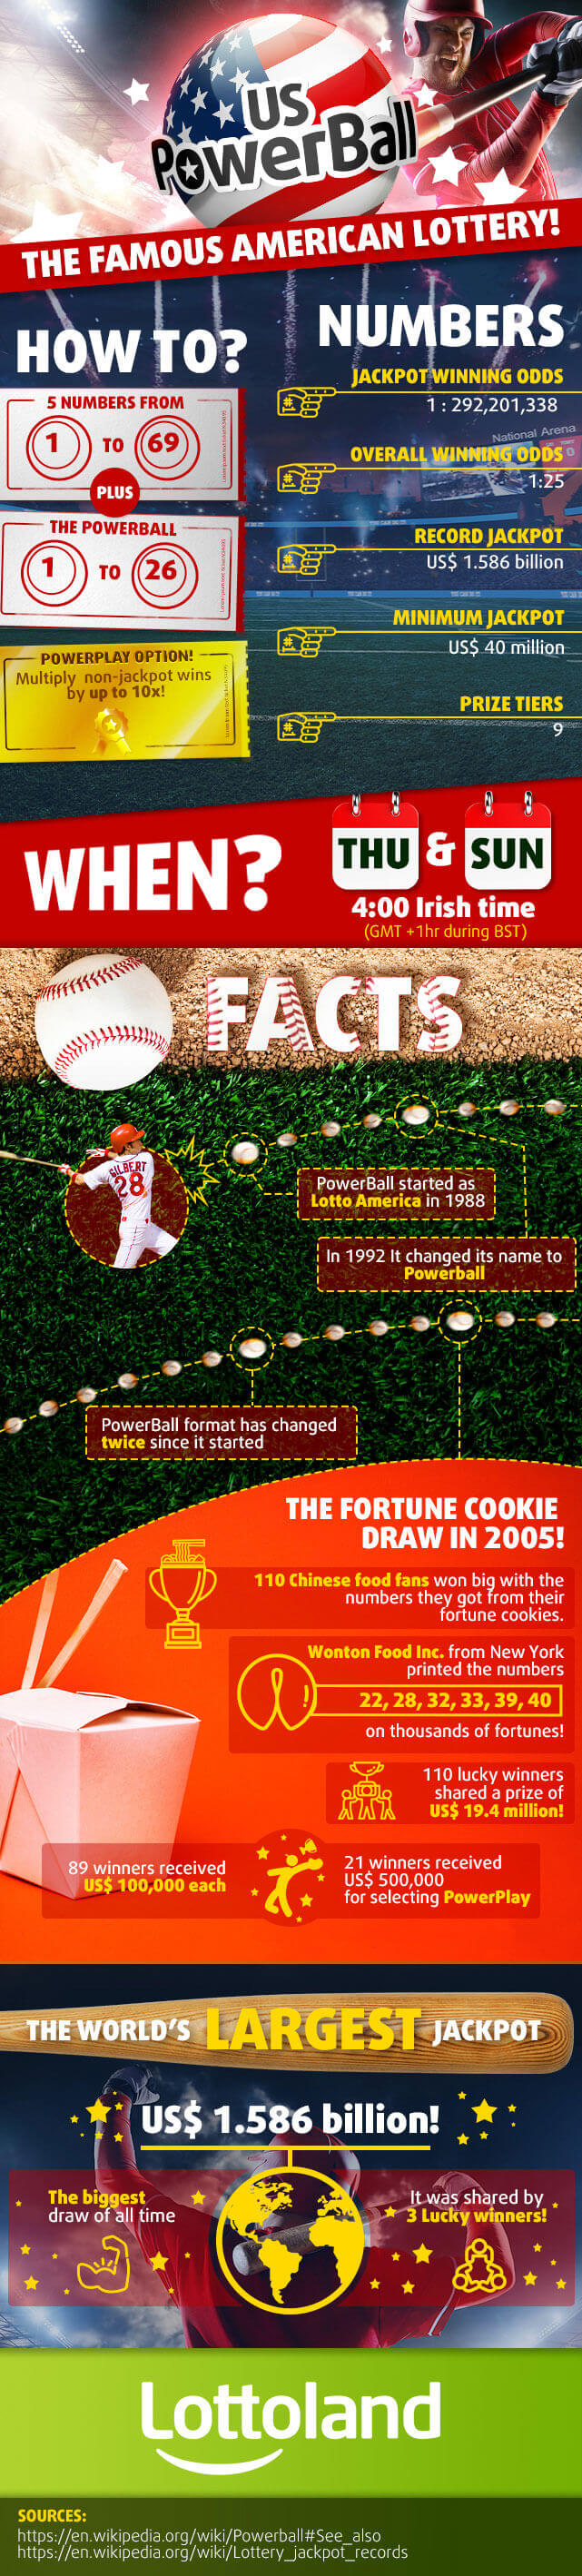 Infographic with facts about PowerBall